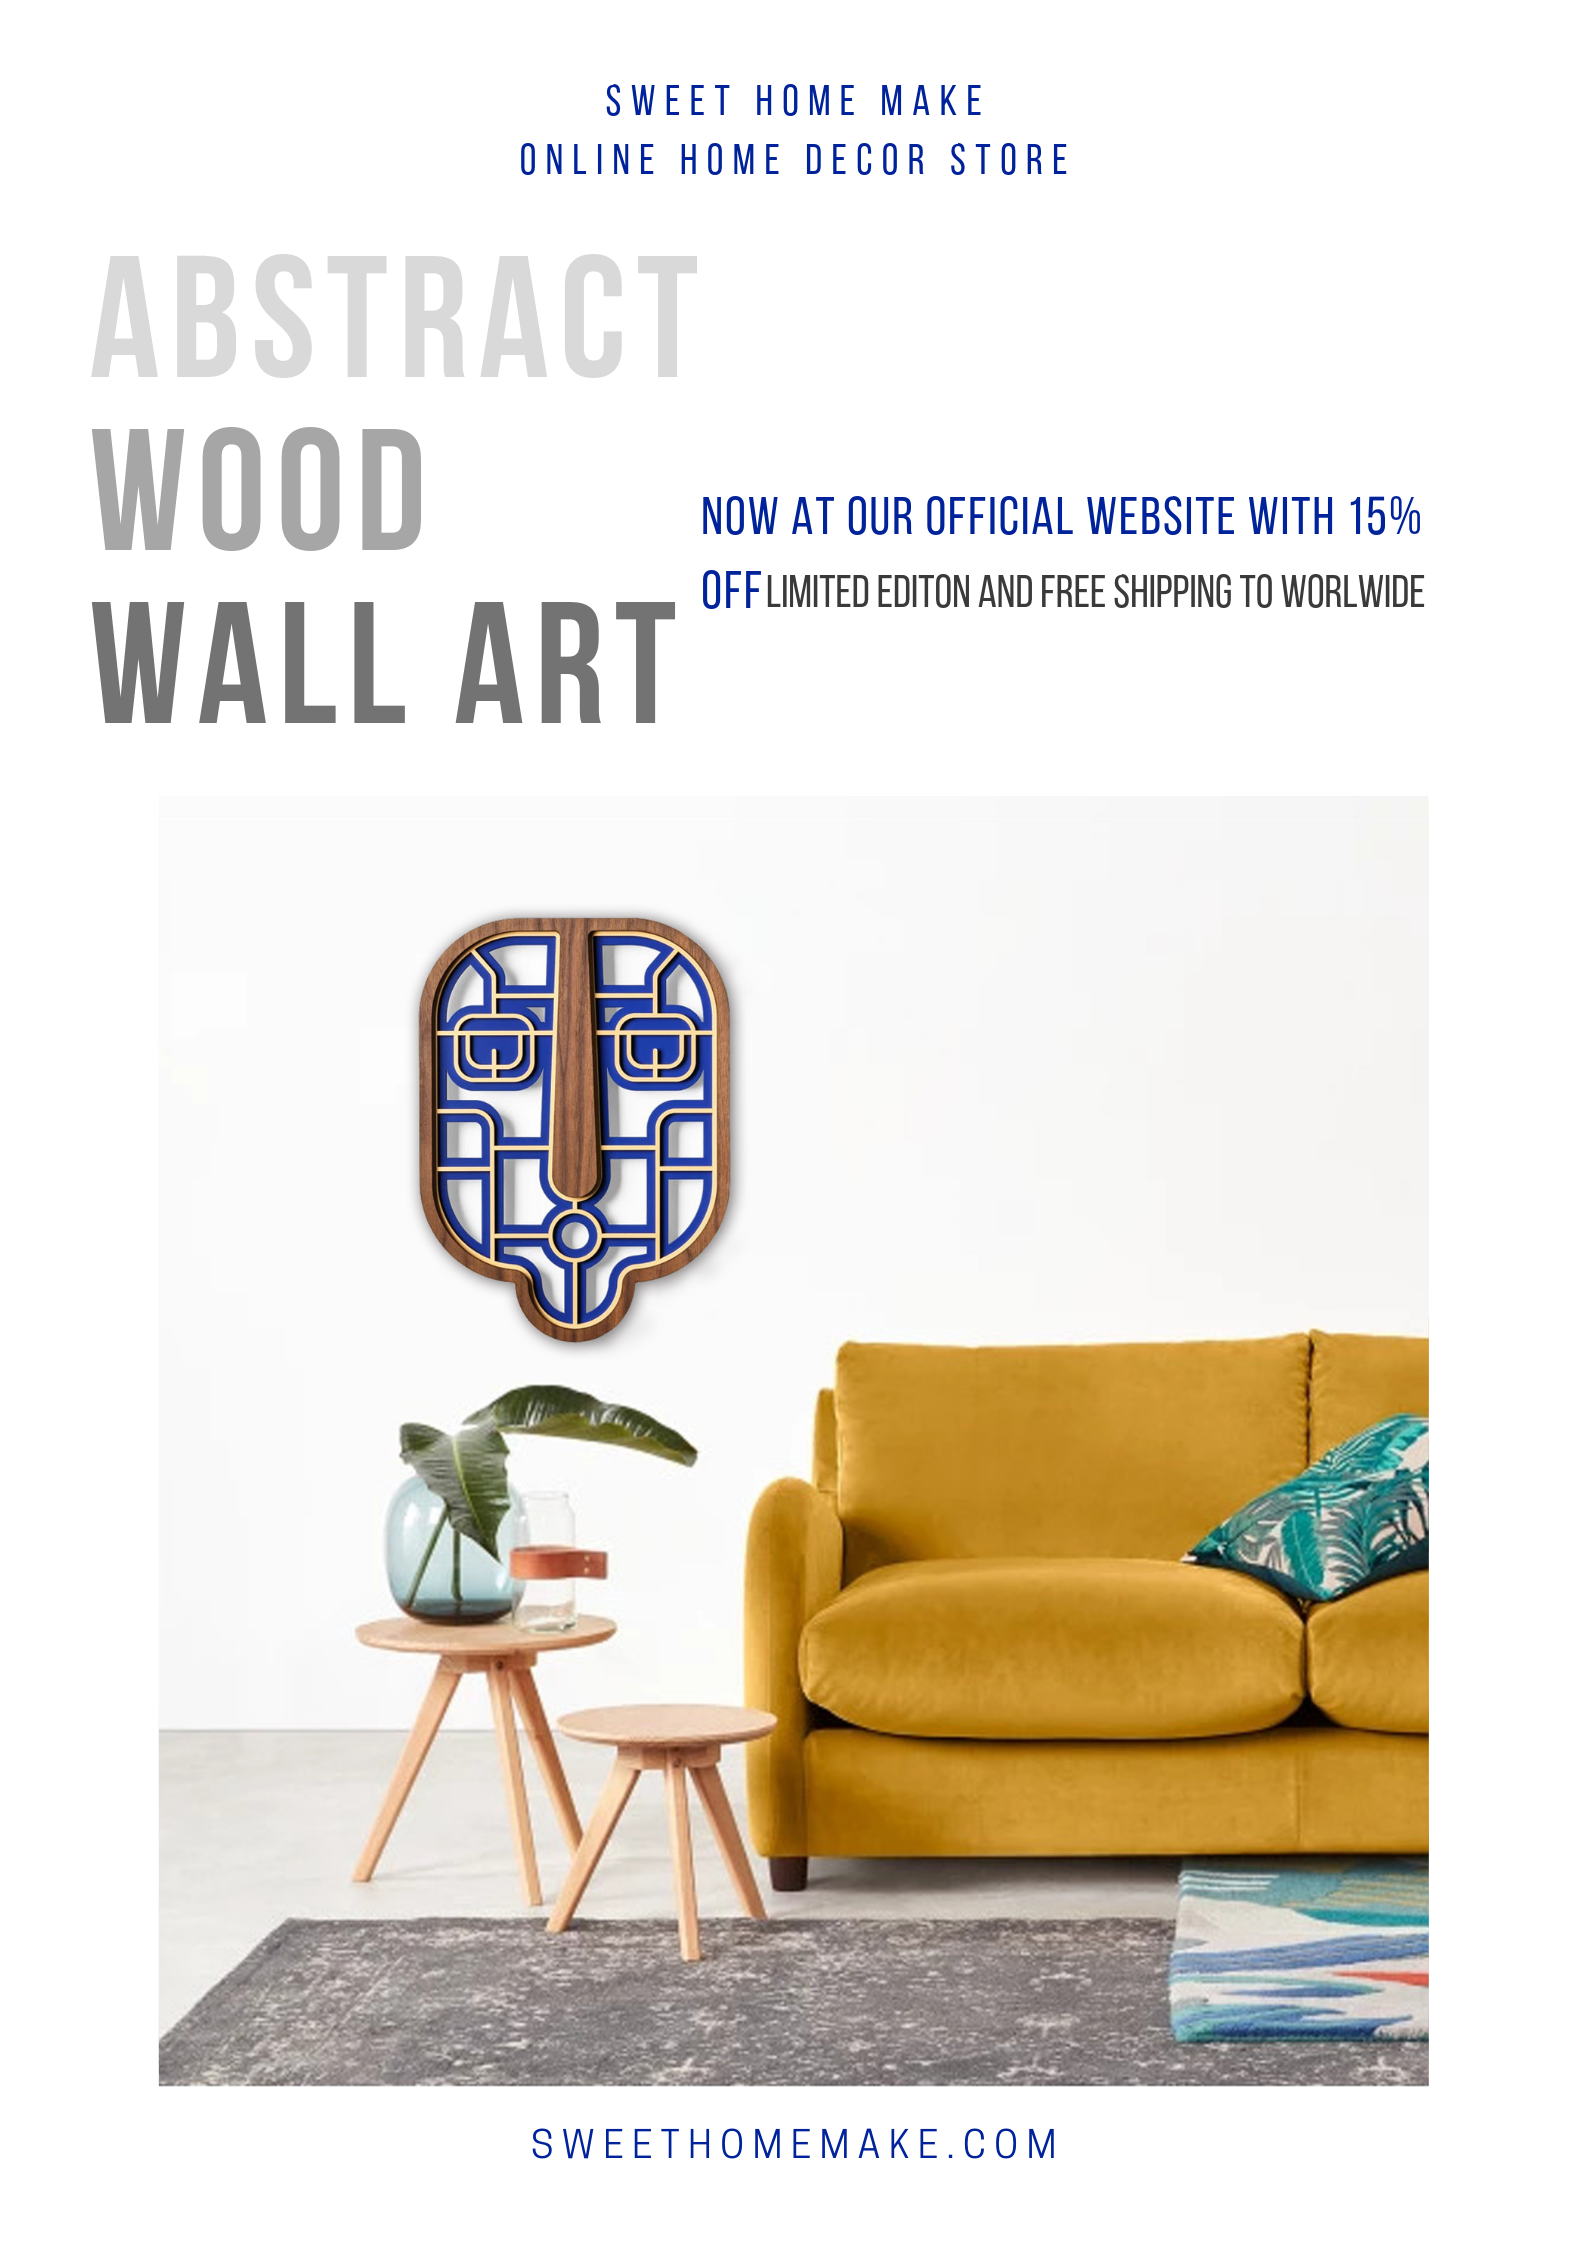 Abstract Wall Decor with Wood Blue Wall Art